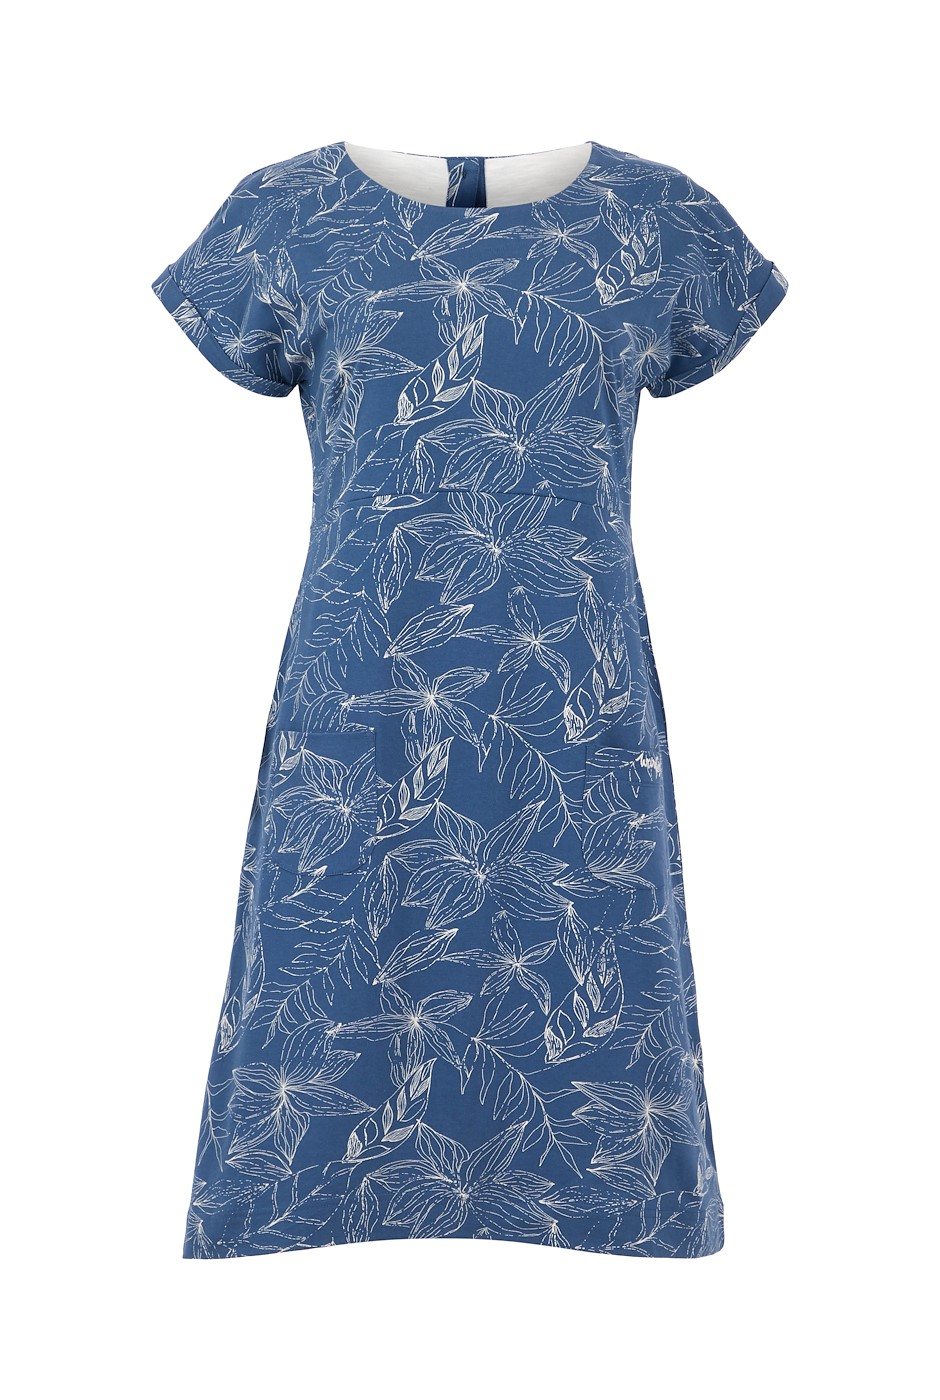 Tallahassee Organic Cotton Printed Jersey Dress Ensign Blue